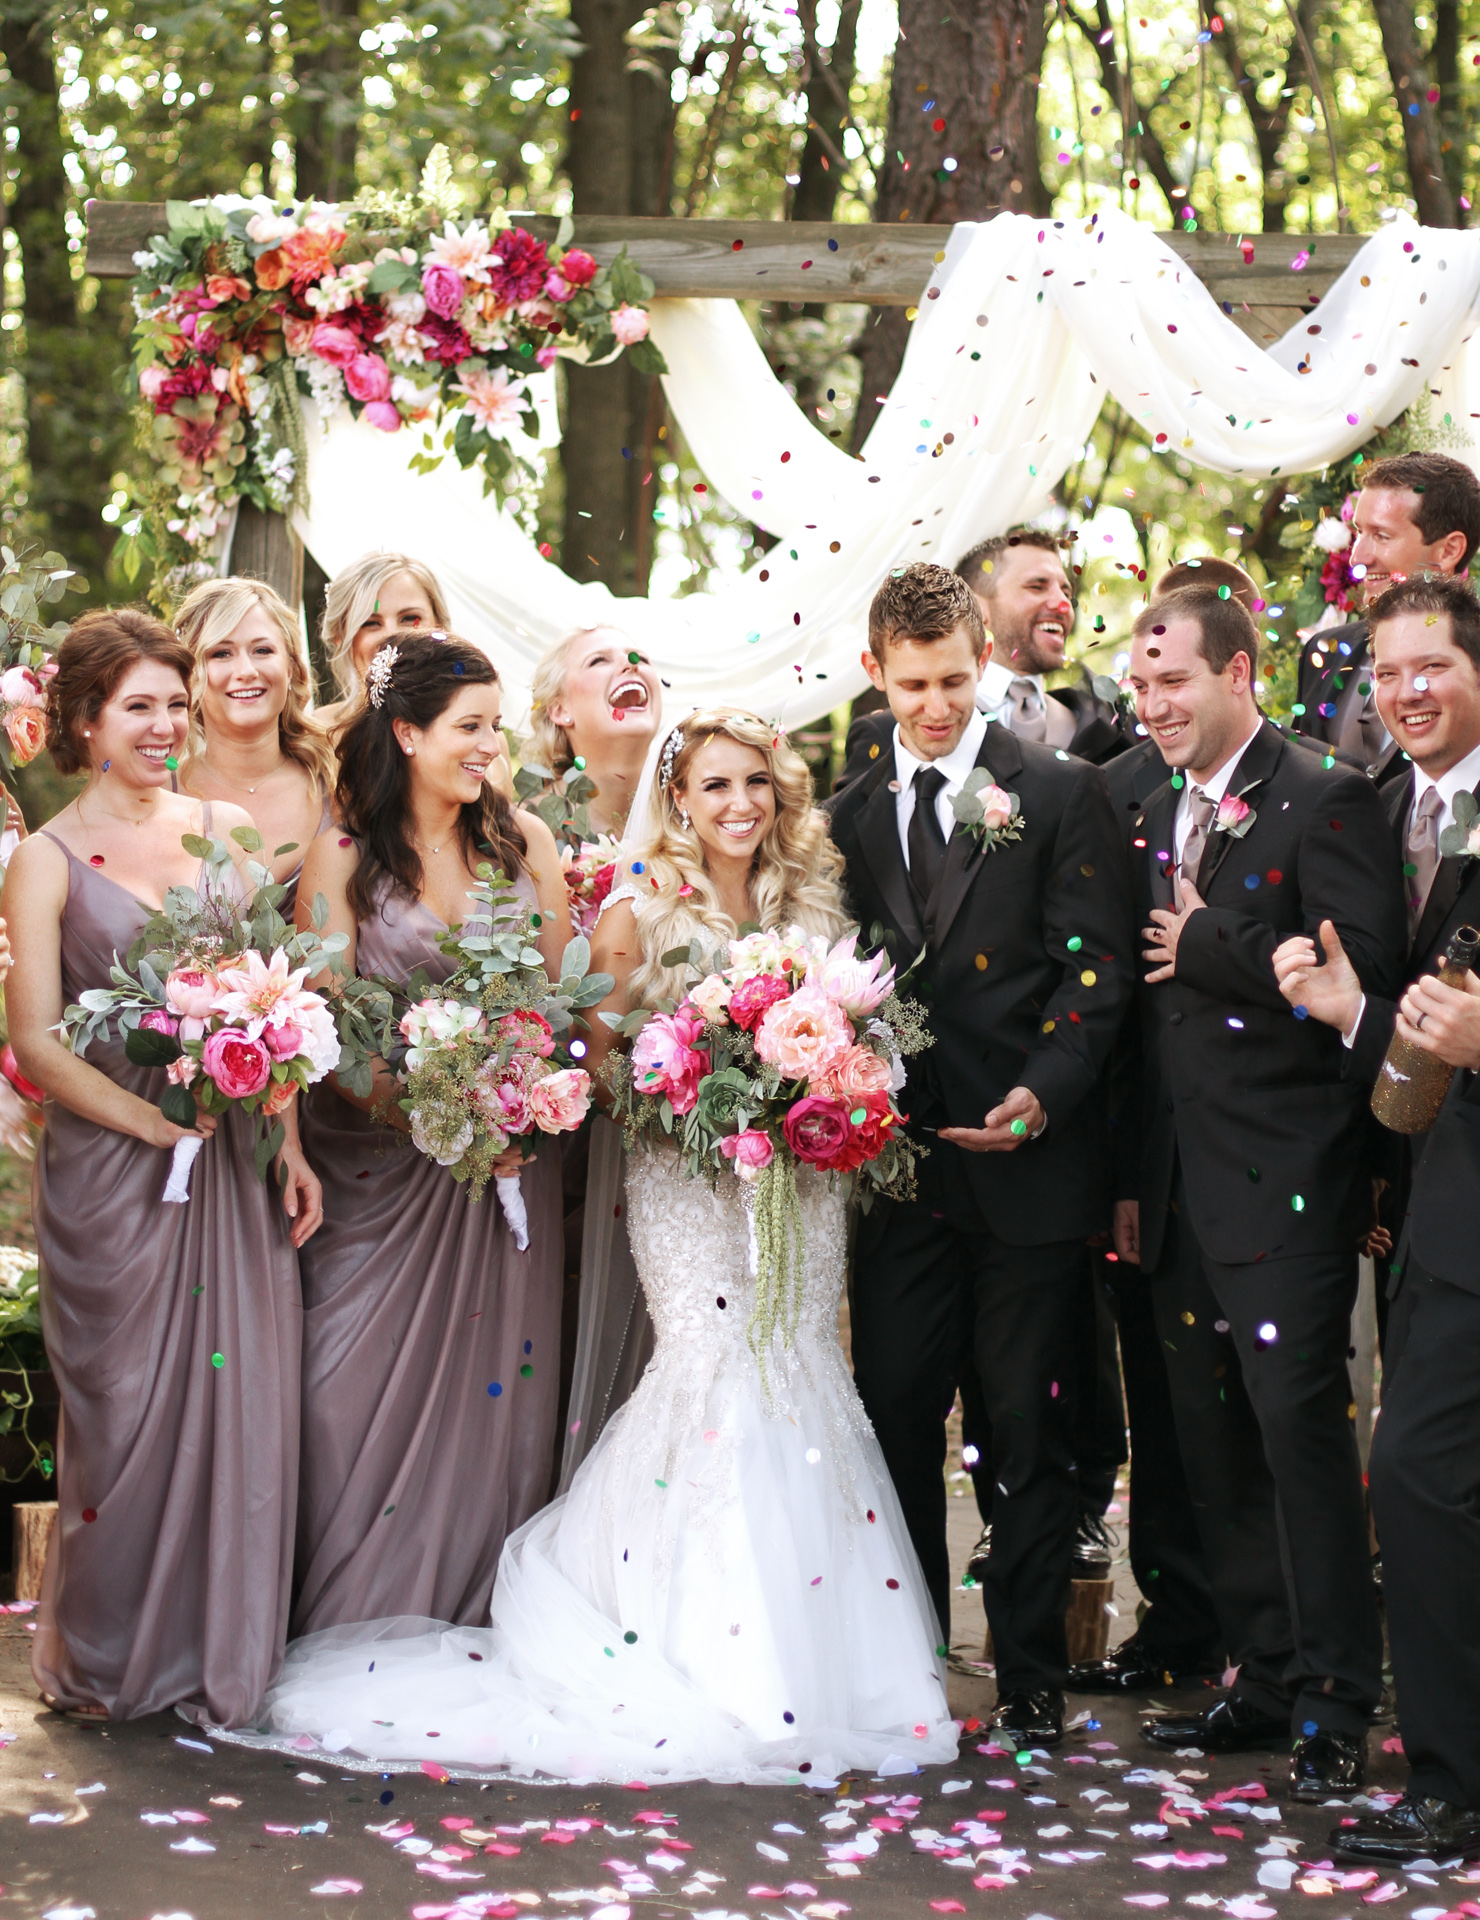 A wedding party celebration picture with confetti